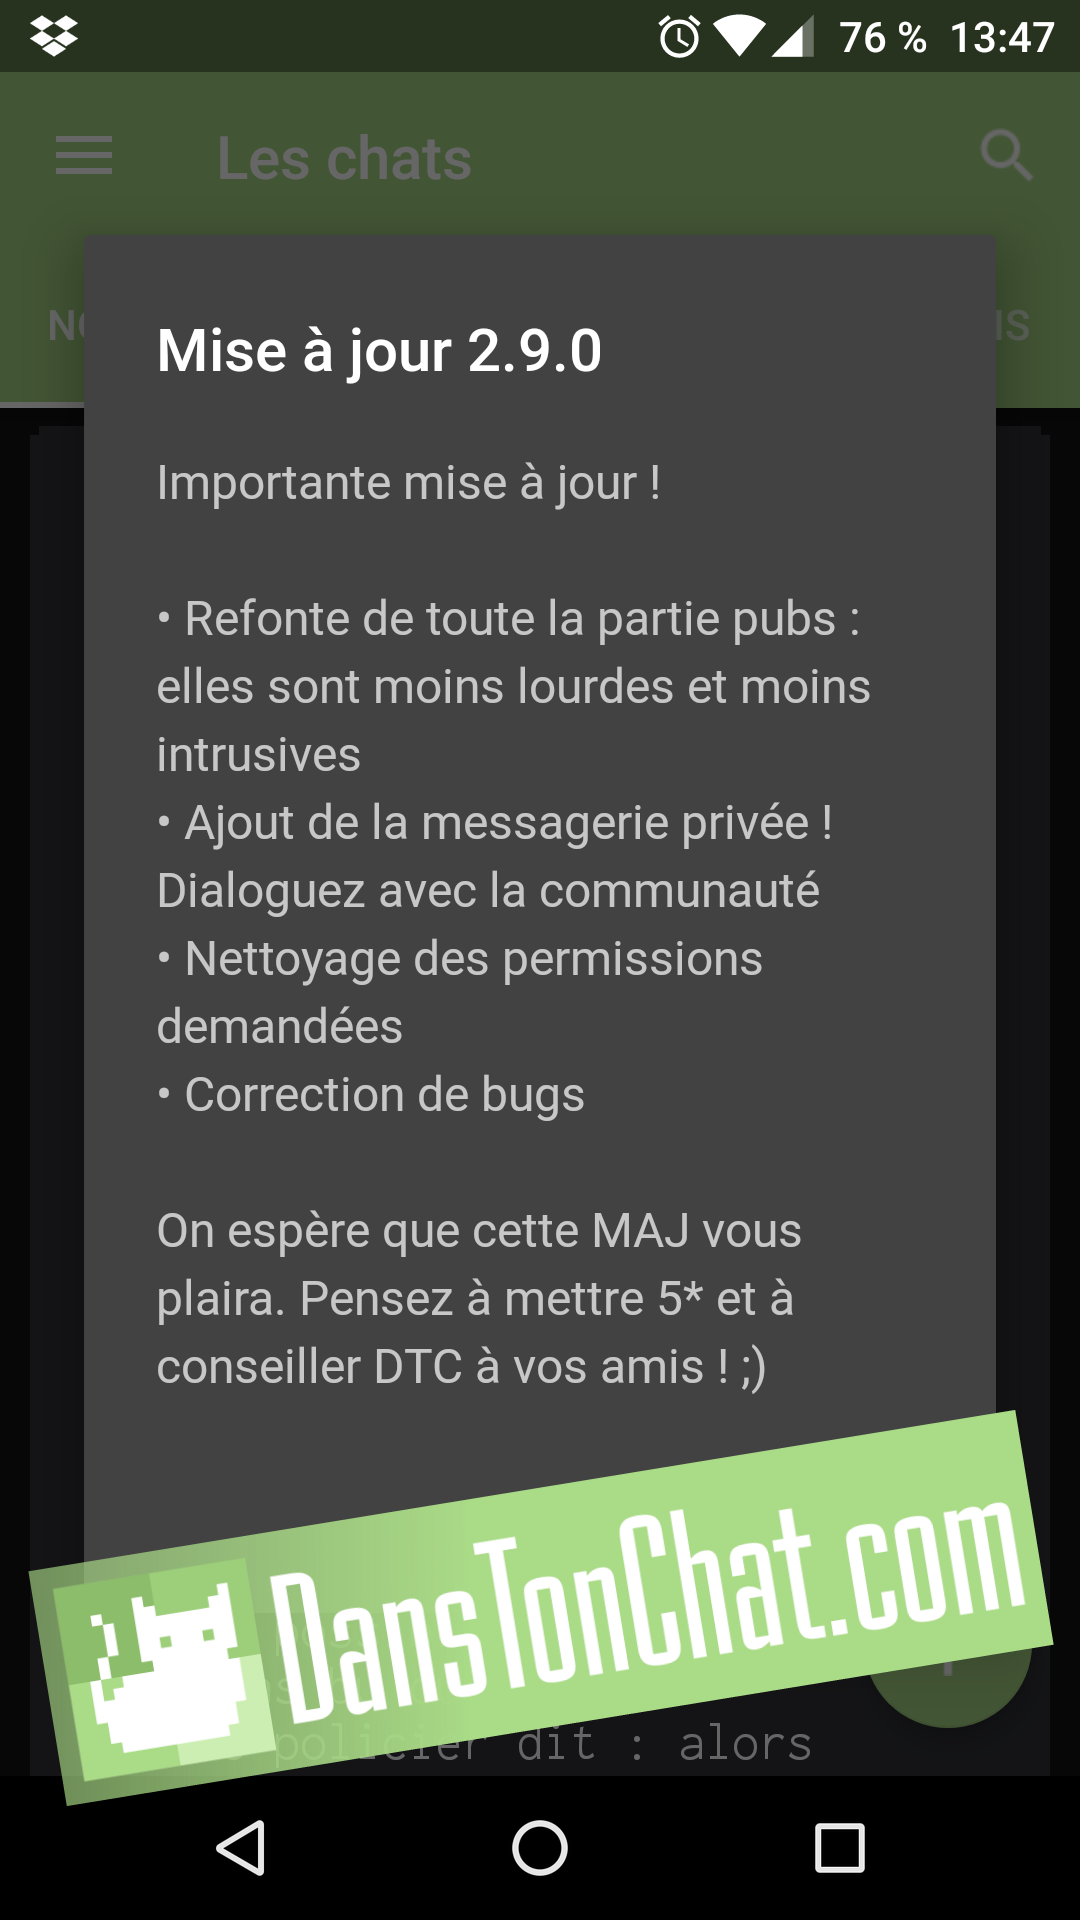 Appli DTC version 2.9.0